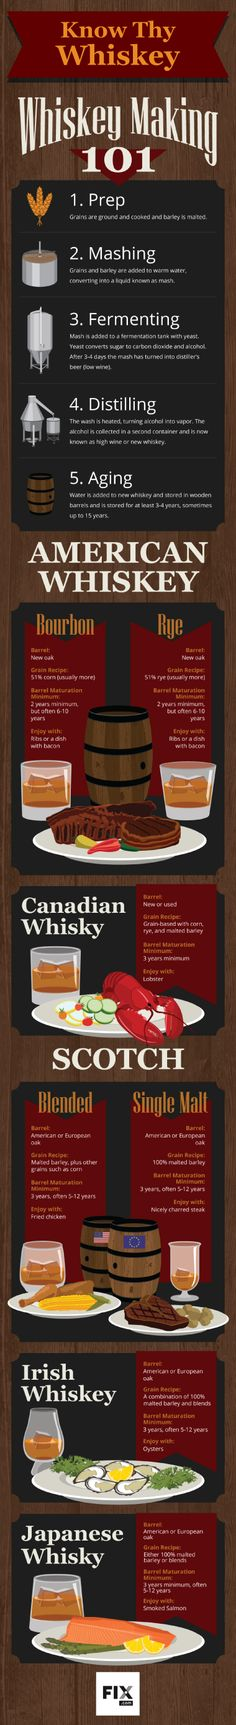 Rye, scotch, Irish whiskey, what's the difference?! Although these beverages all fall under the whiskey umbrella, learn how recipe variations from around the world give each a unique and incredible flavor and story!